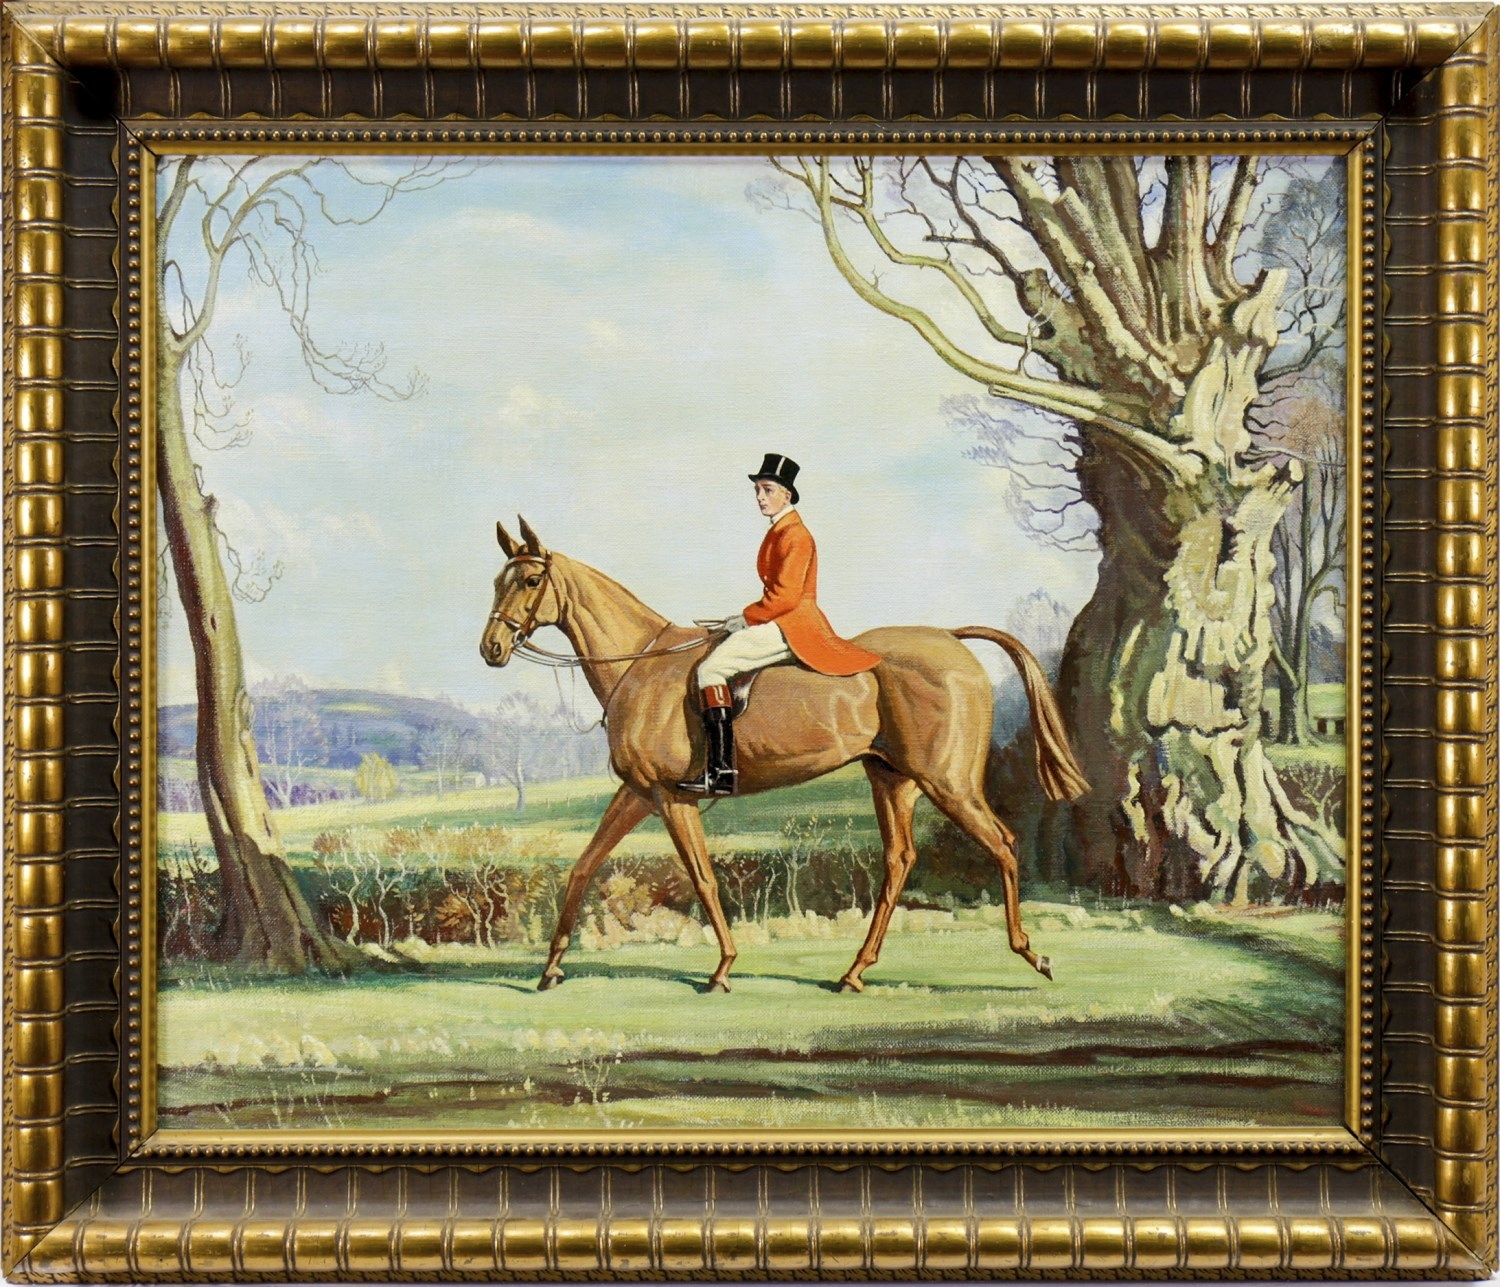 Lot 646 - THE PRICE ON FORREST WITCH, AFTER SIR ALFRED MUNNINGS, AN OIL BY WILLIAM WALKER TELFER